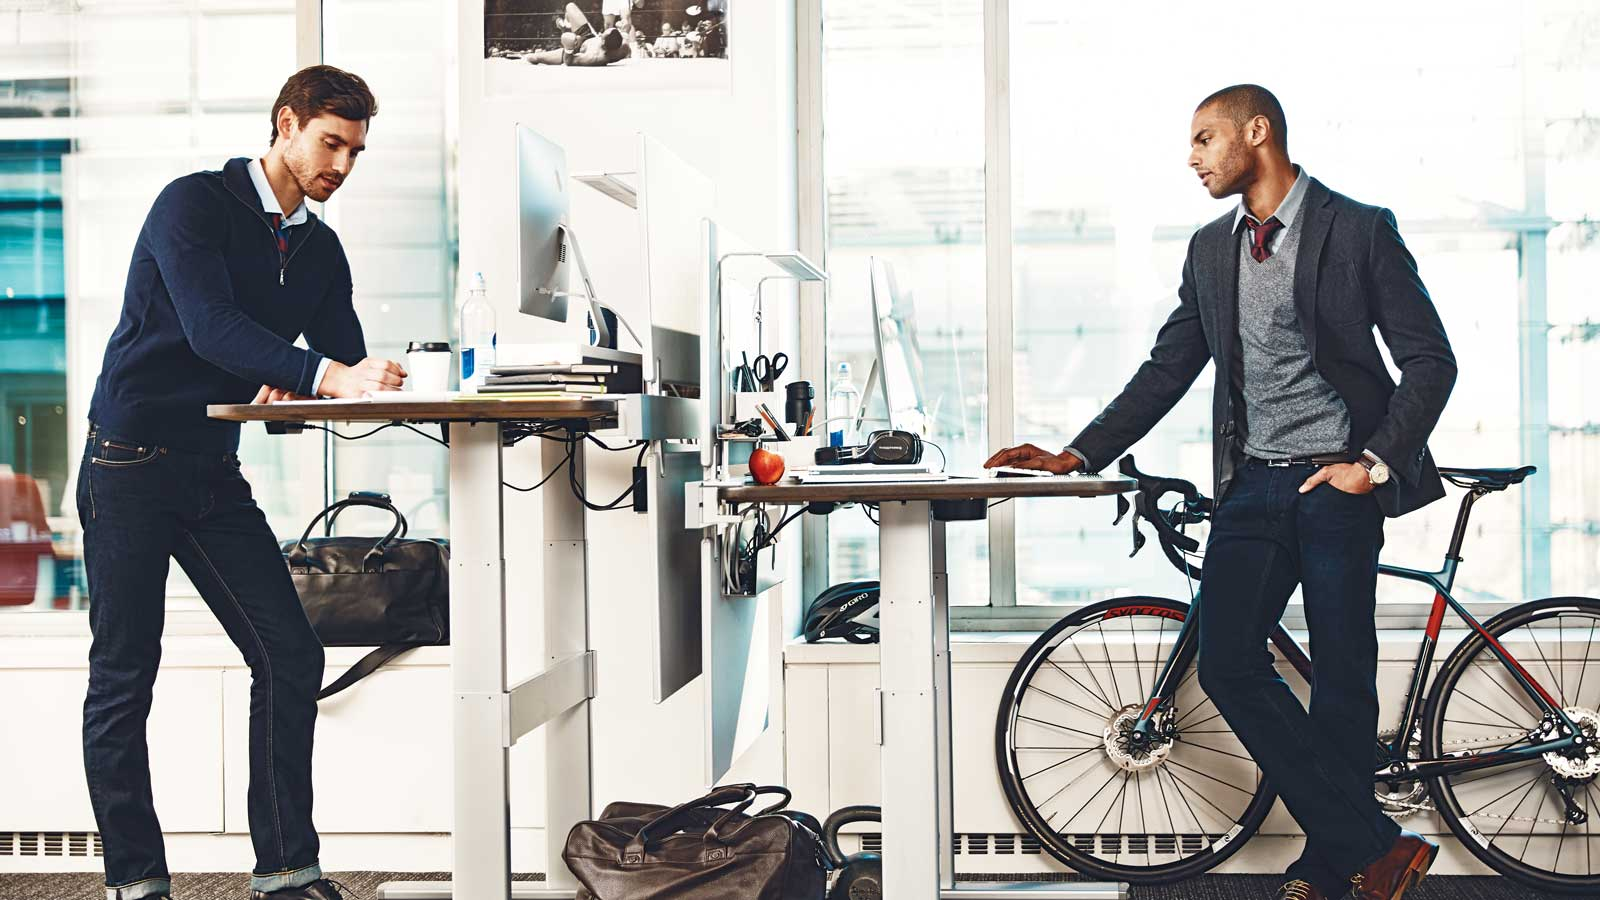 This Is the Ideal Office Setup For Low Stress and Better Physical Health